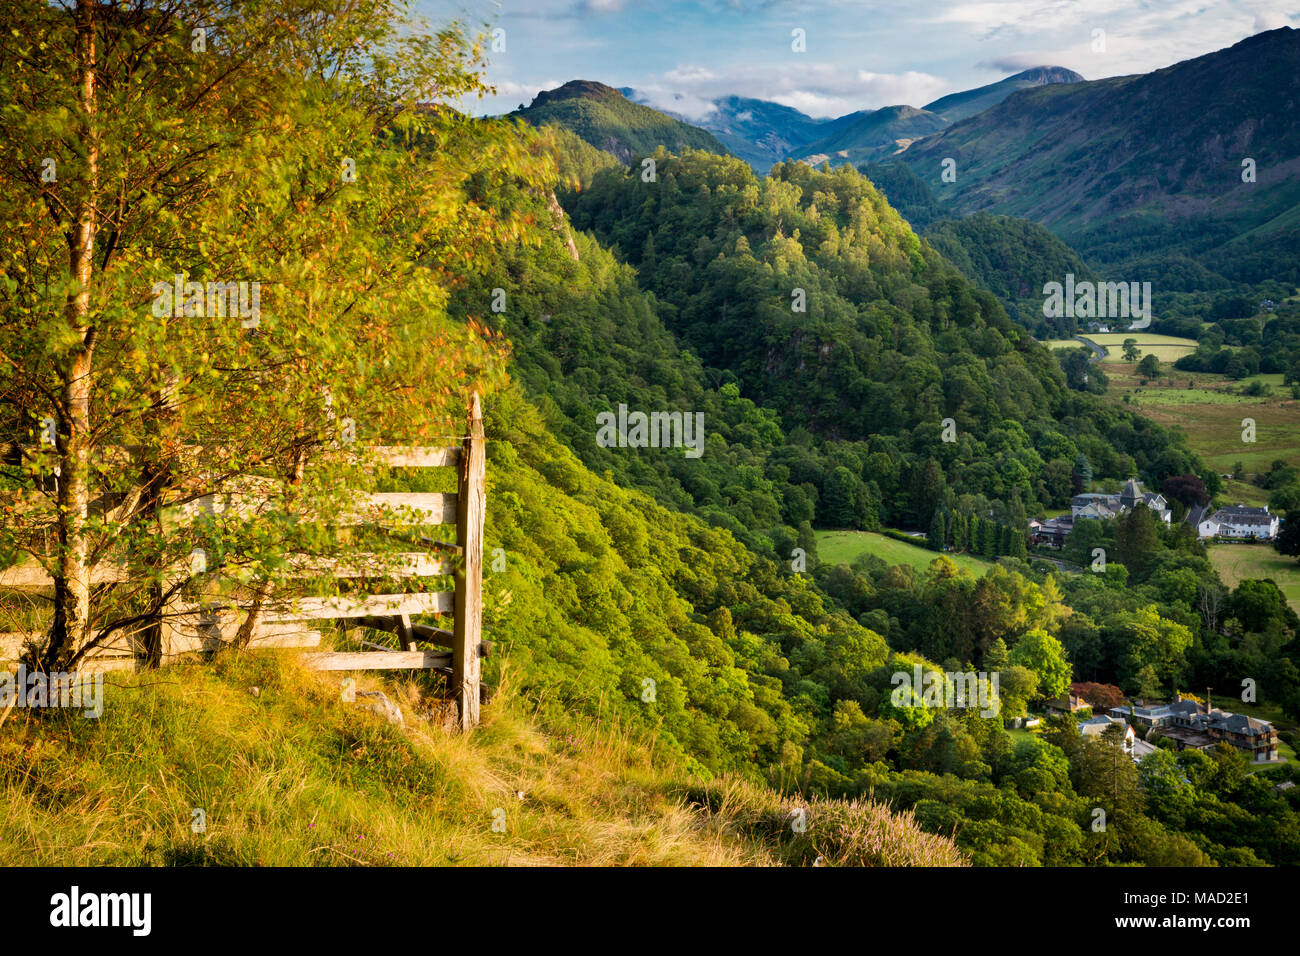 Overlooking Borrowdale Valley, Derwentwater, Lake District, Cumbria, England - Stock Image